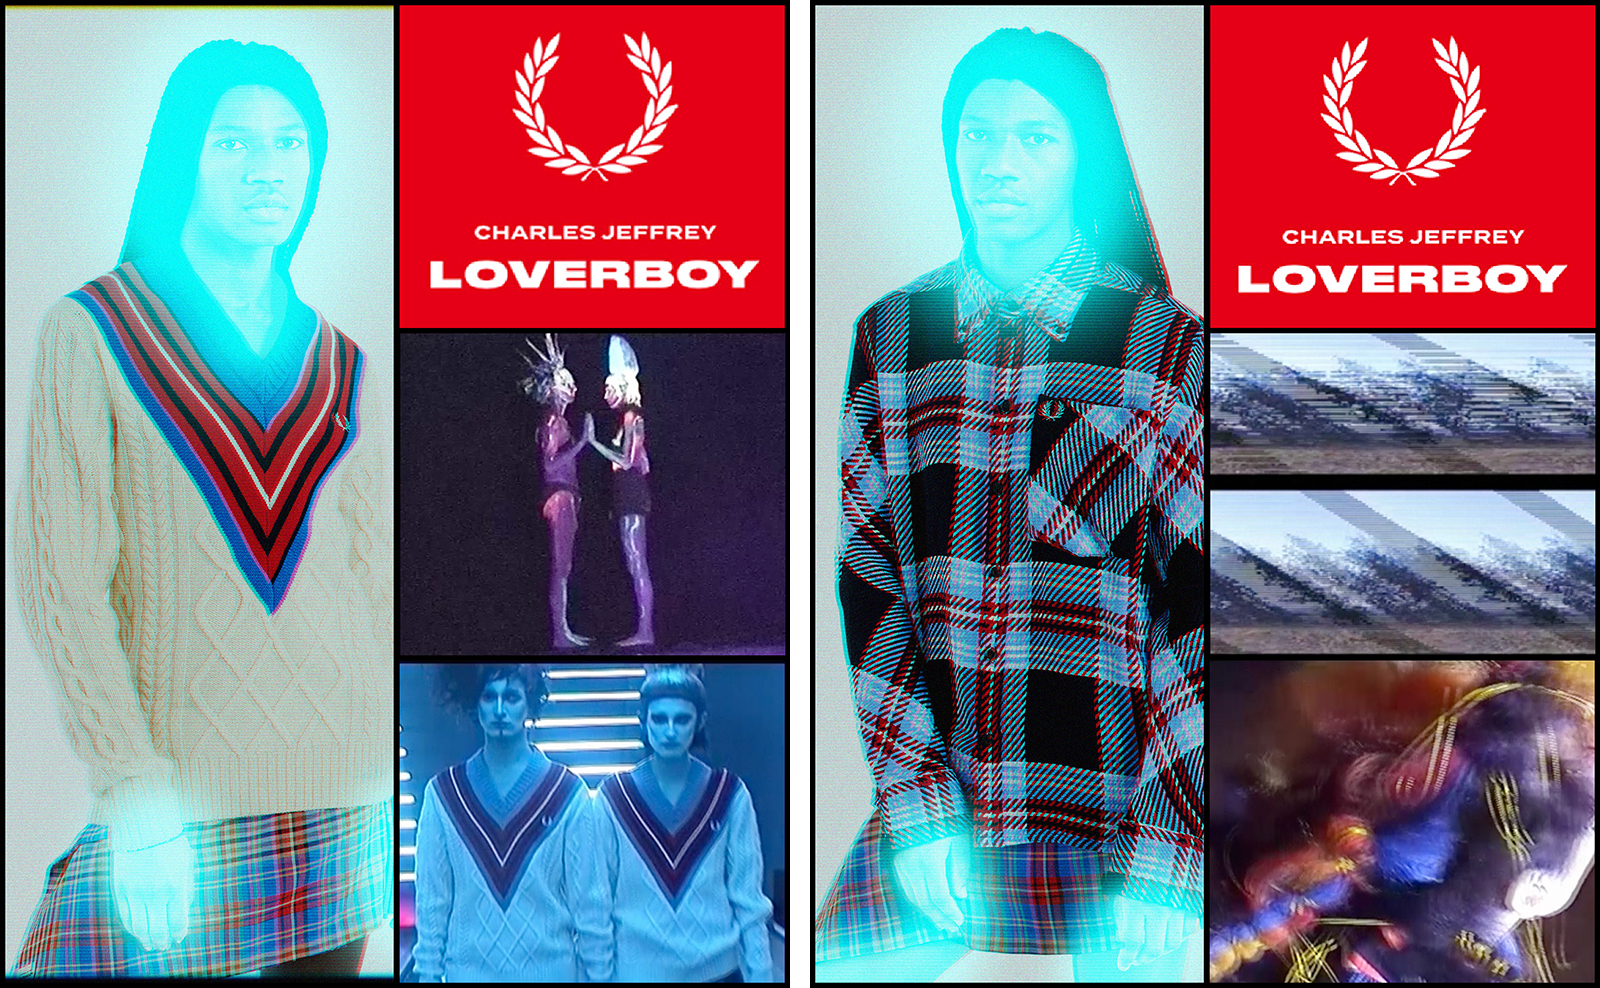 Fred Perry x Charles Jeffrey Loverboy